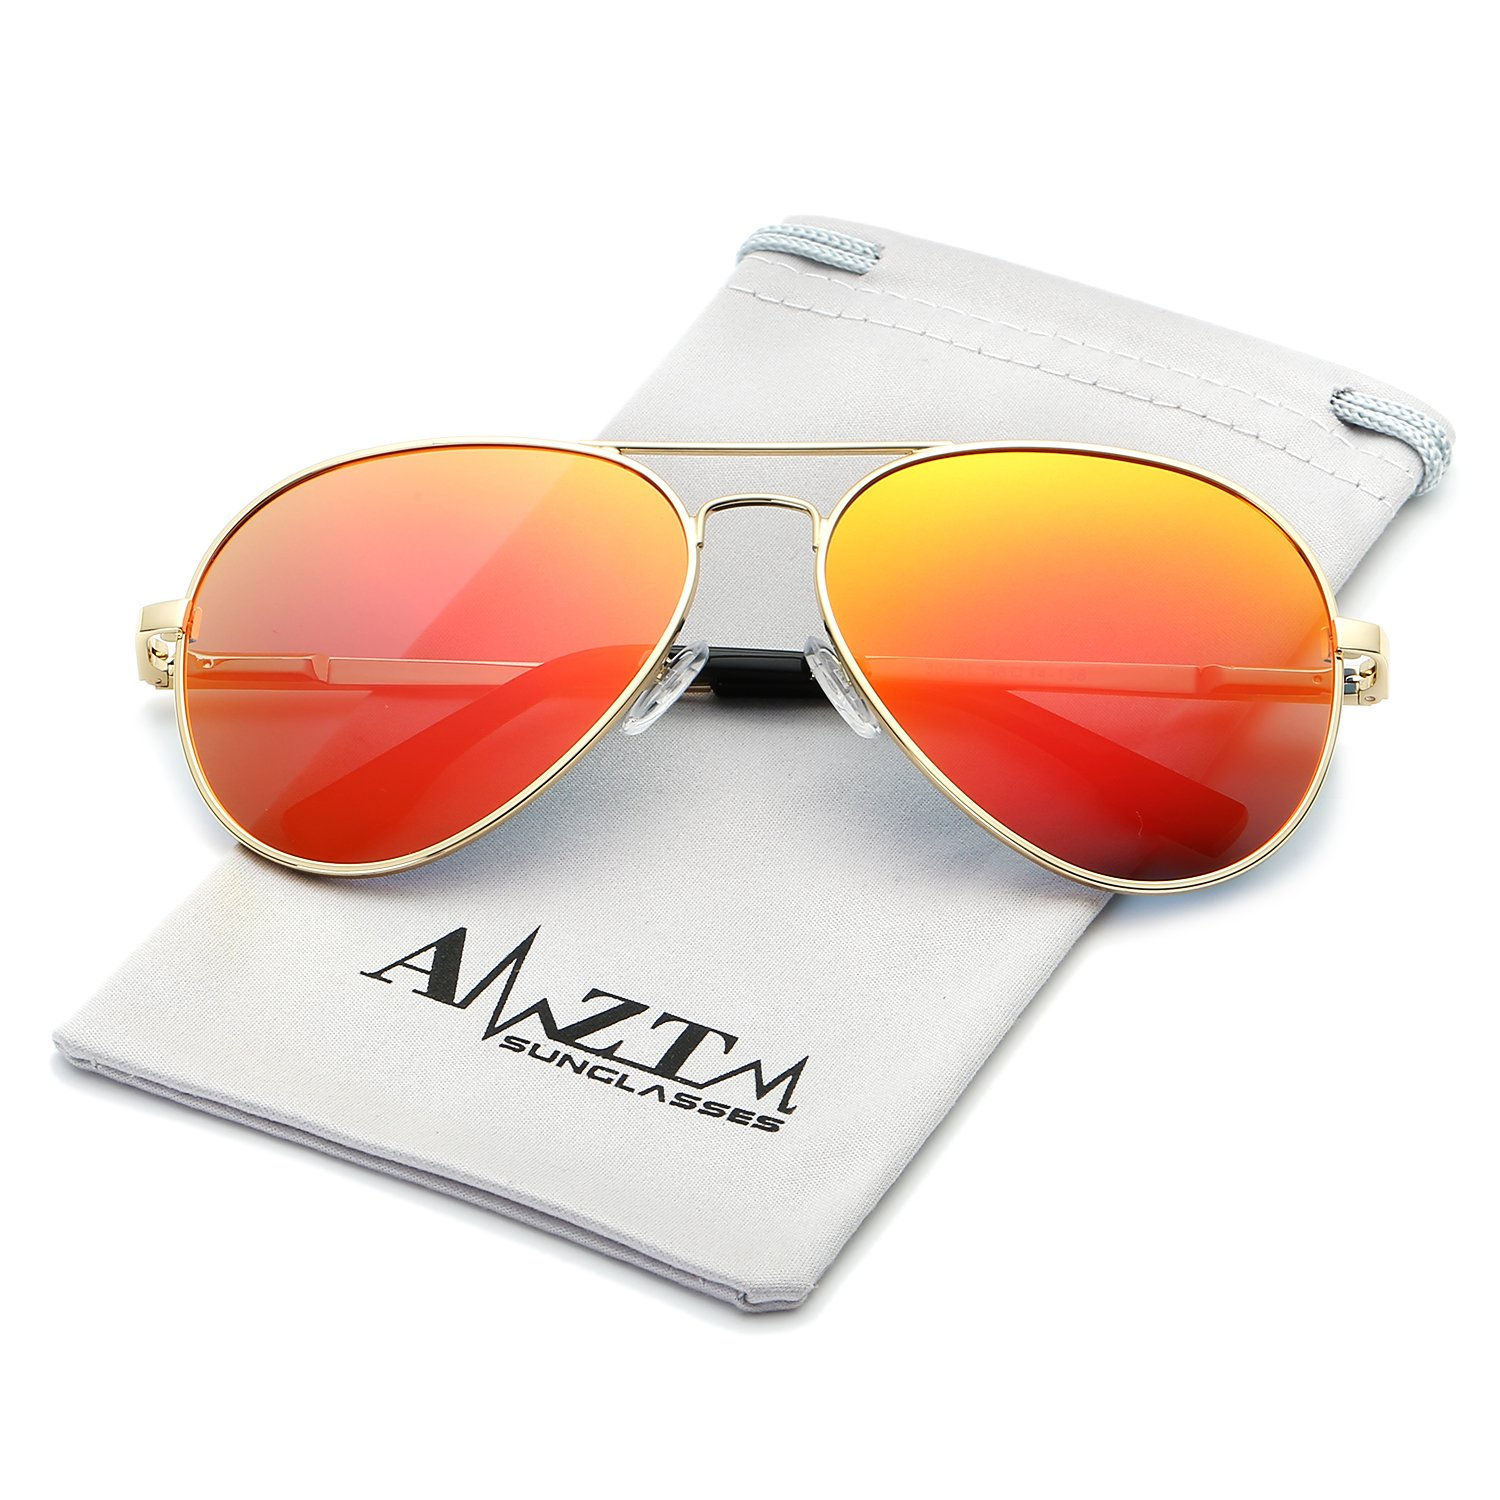 AMZTM Top Quality Classic Retro Eyewear Double Bridge Metal Frame Trend Fashion Mirrored Reflective REVO Polarized Lens Designer Aviator Sunglasses For Women and Men (Gold Frame Orange Red Lens, 62)